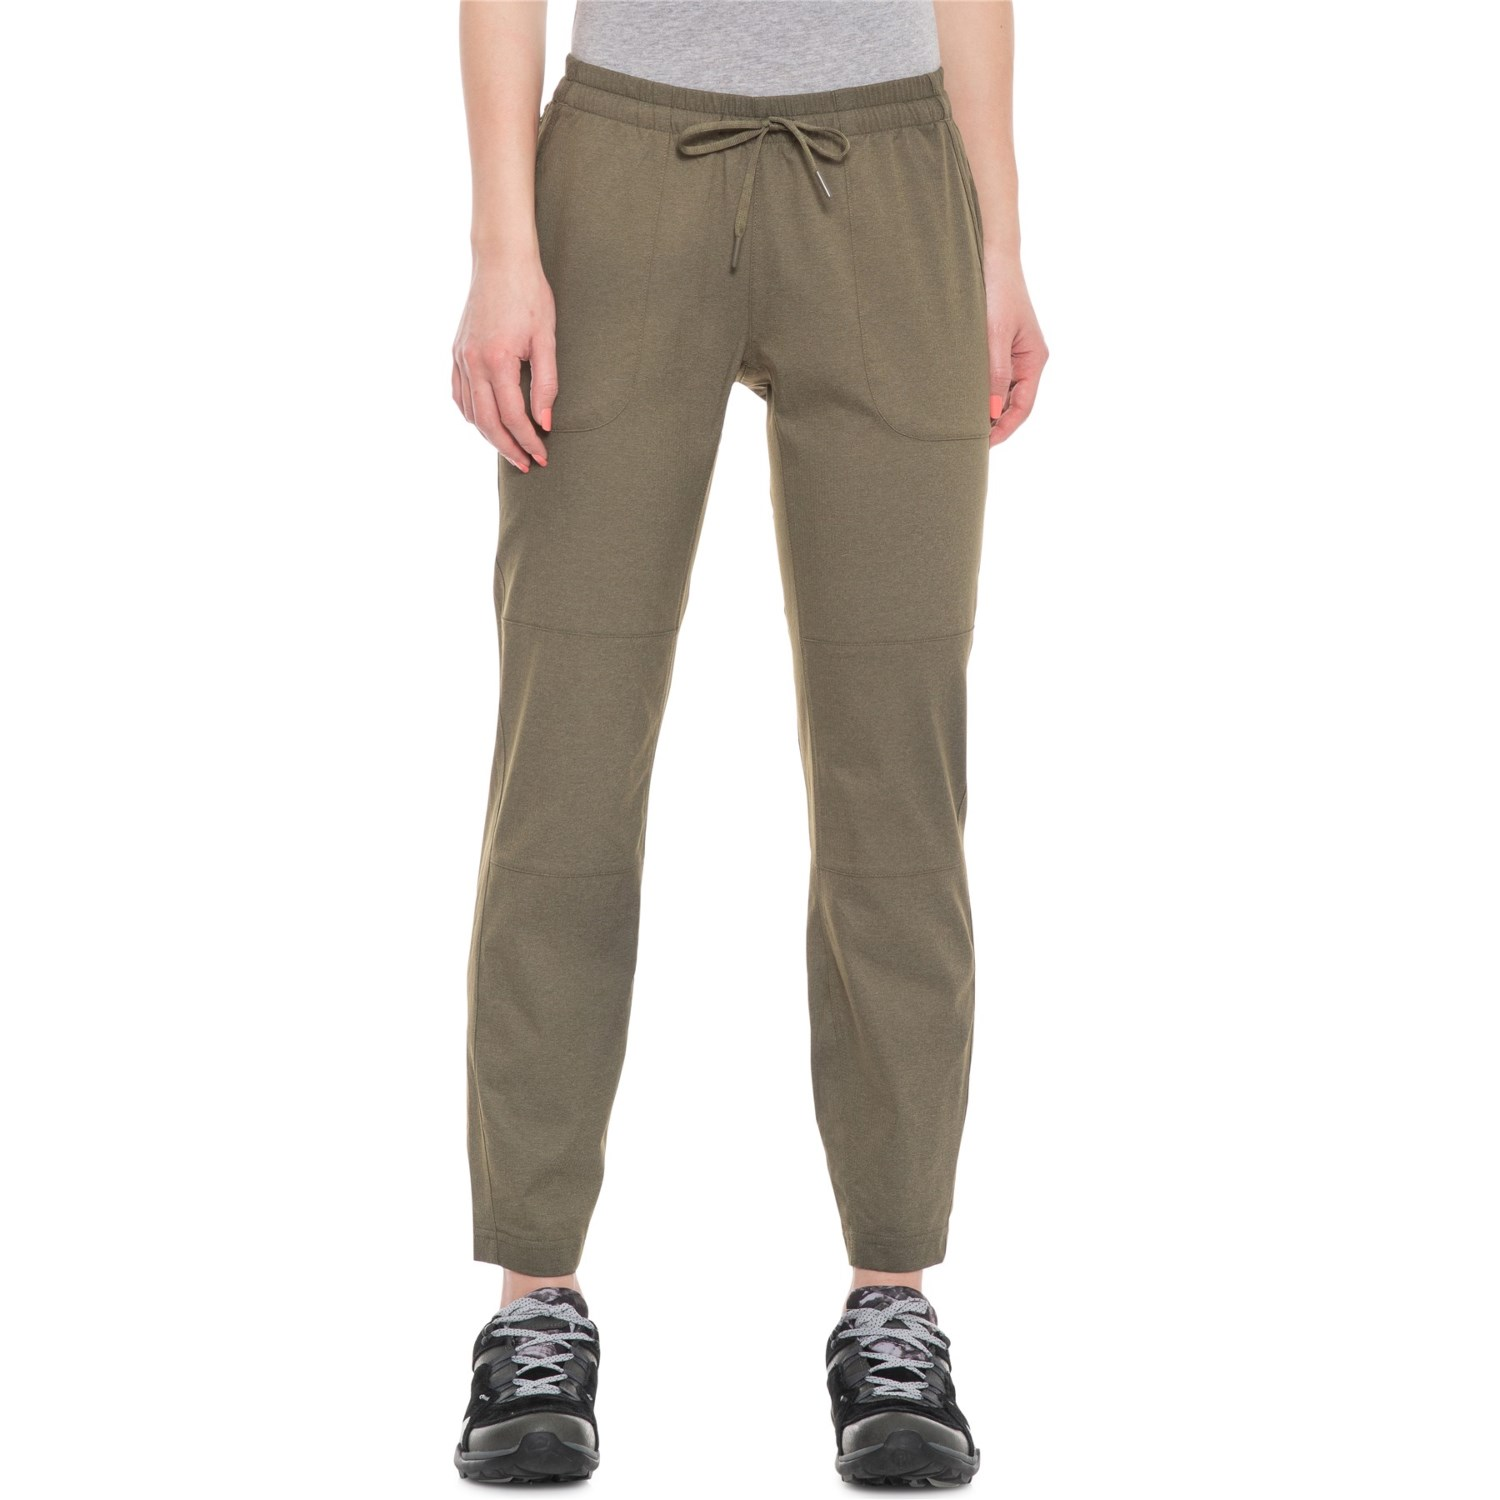 e240f371f The North Face Aphrodite Mountain Pants (For Women)